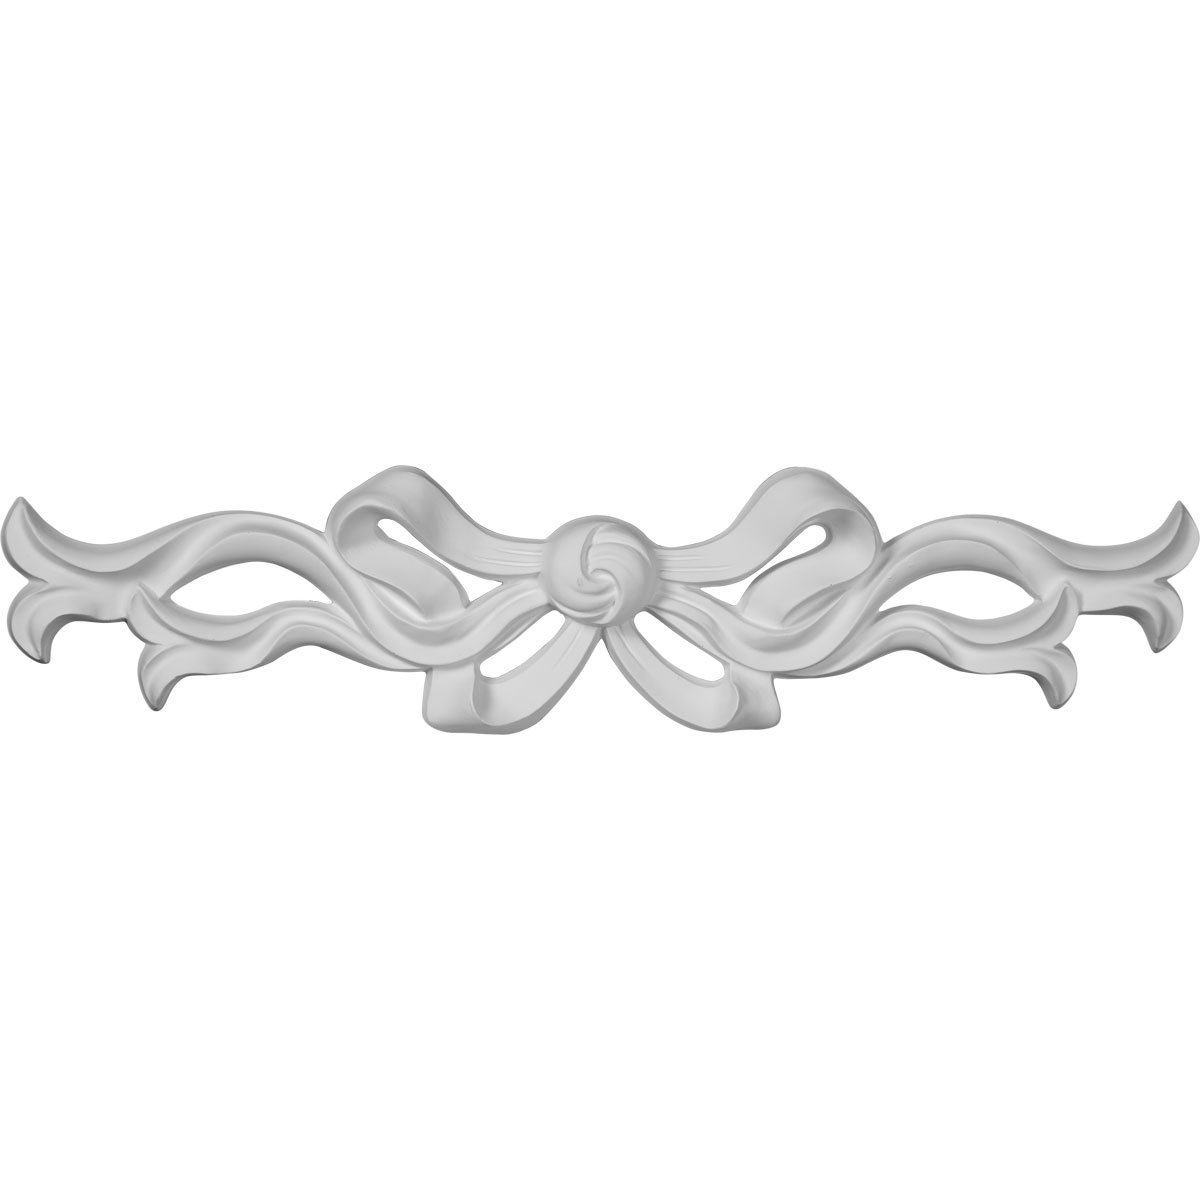 Ekena Millwork ONL13X03X01VE 13-Inch W X 3-Inch H X 3/4-Inch P Versailles Medium Ribbon with Bow Center Onlay